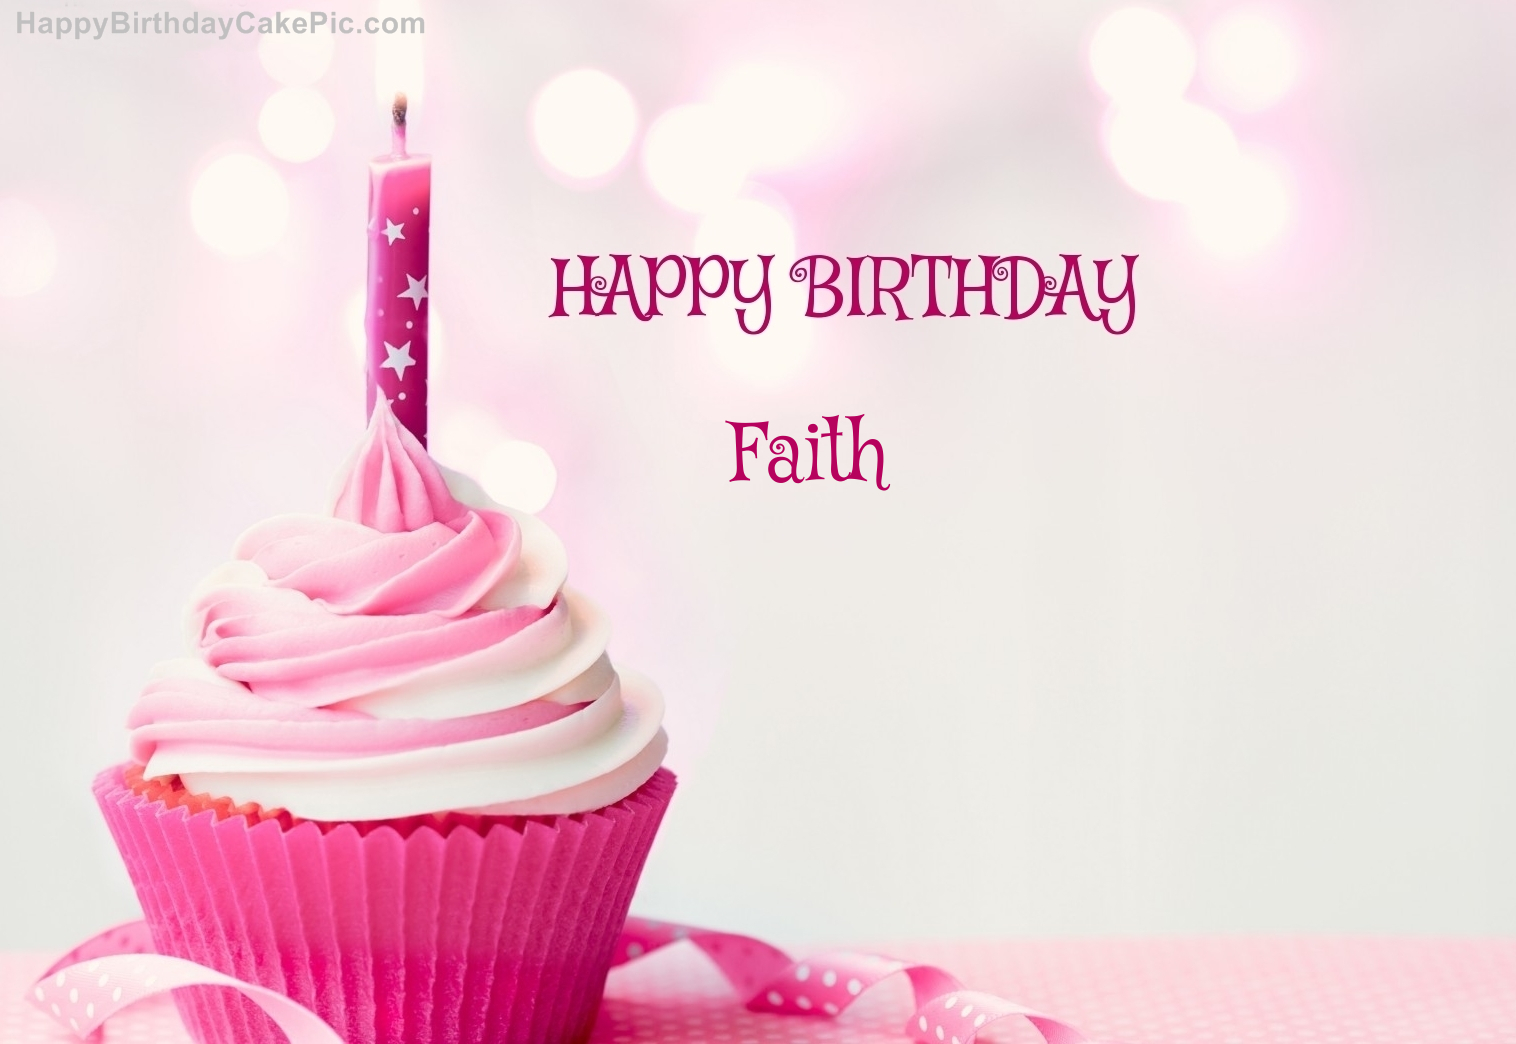 Happy Birthday Cupcake Candle Pink Cake For Faith